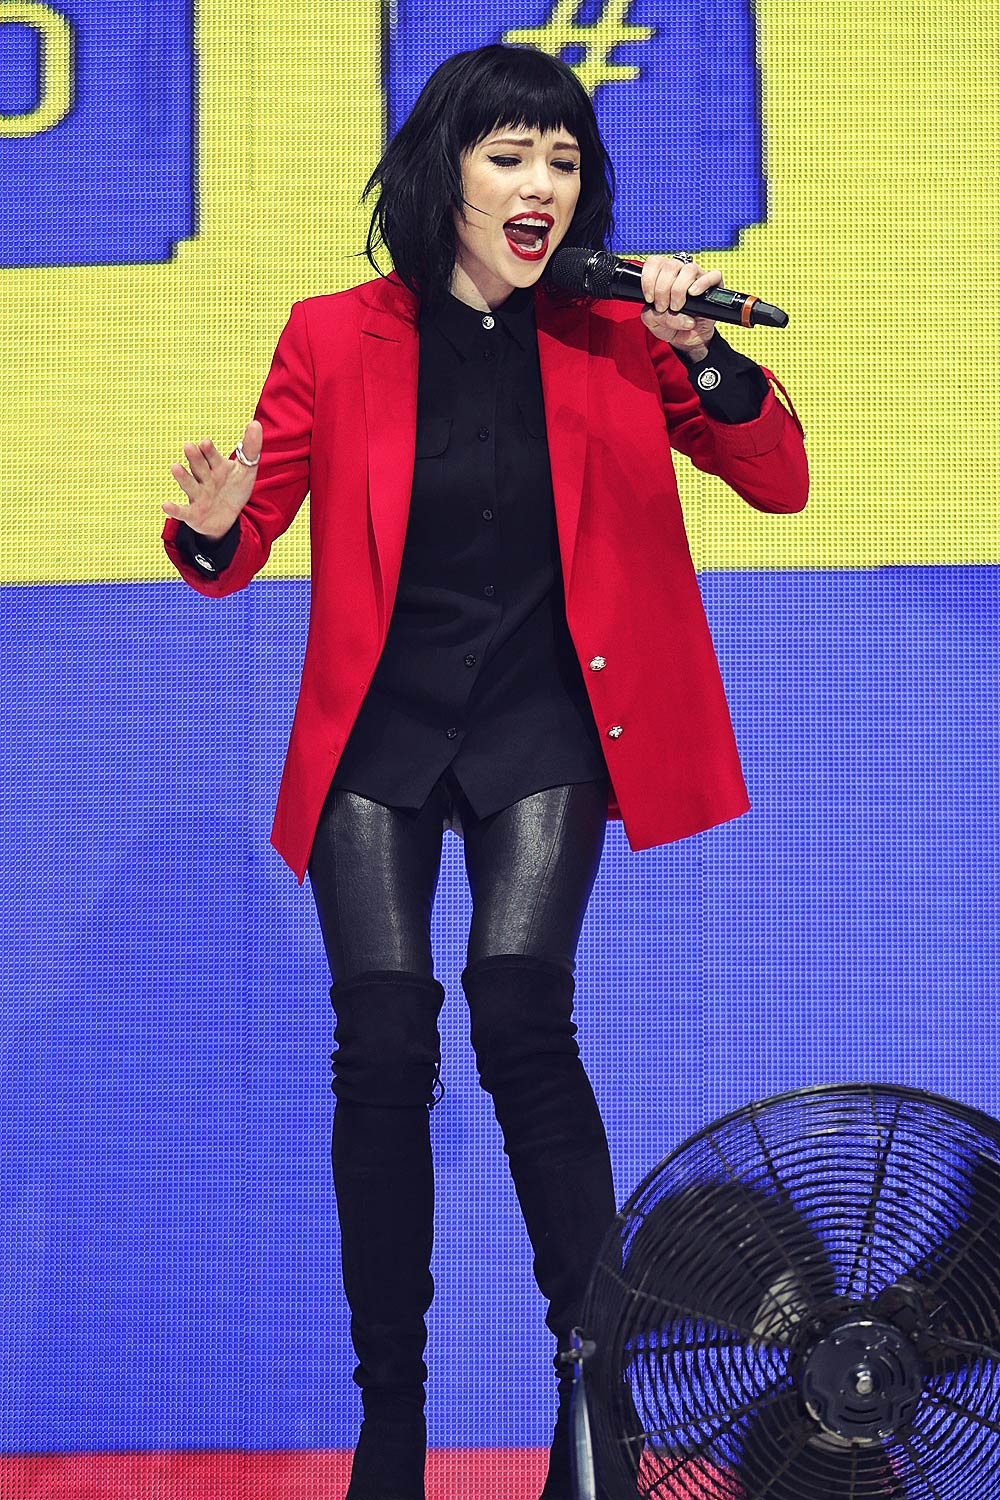 Carly Rae Jepsen attends Jingle Bell Ball 2015